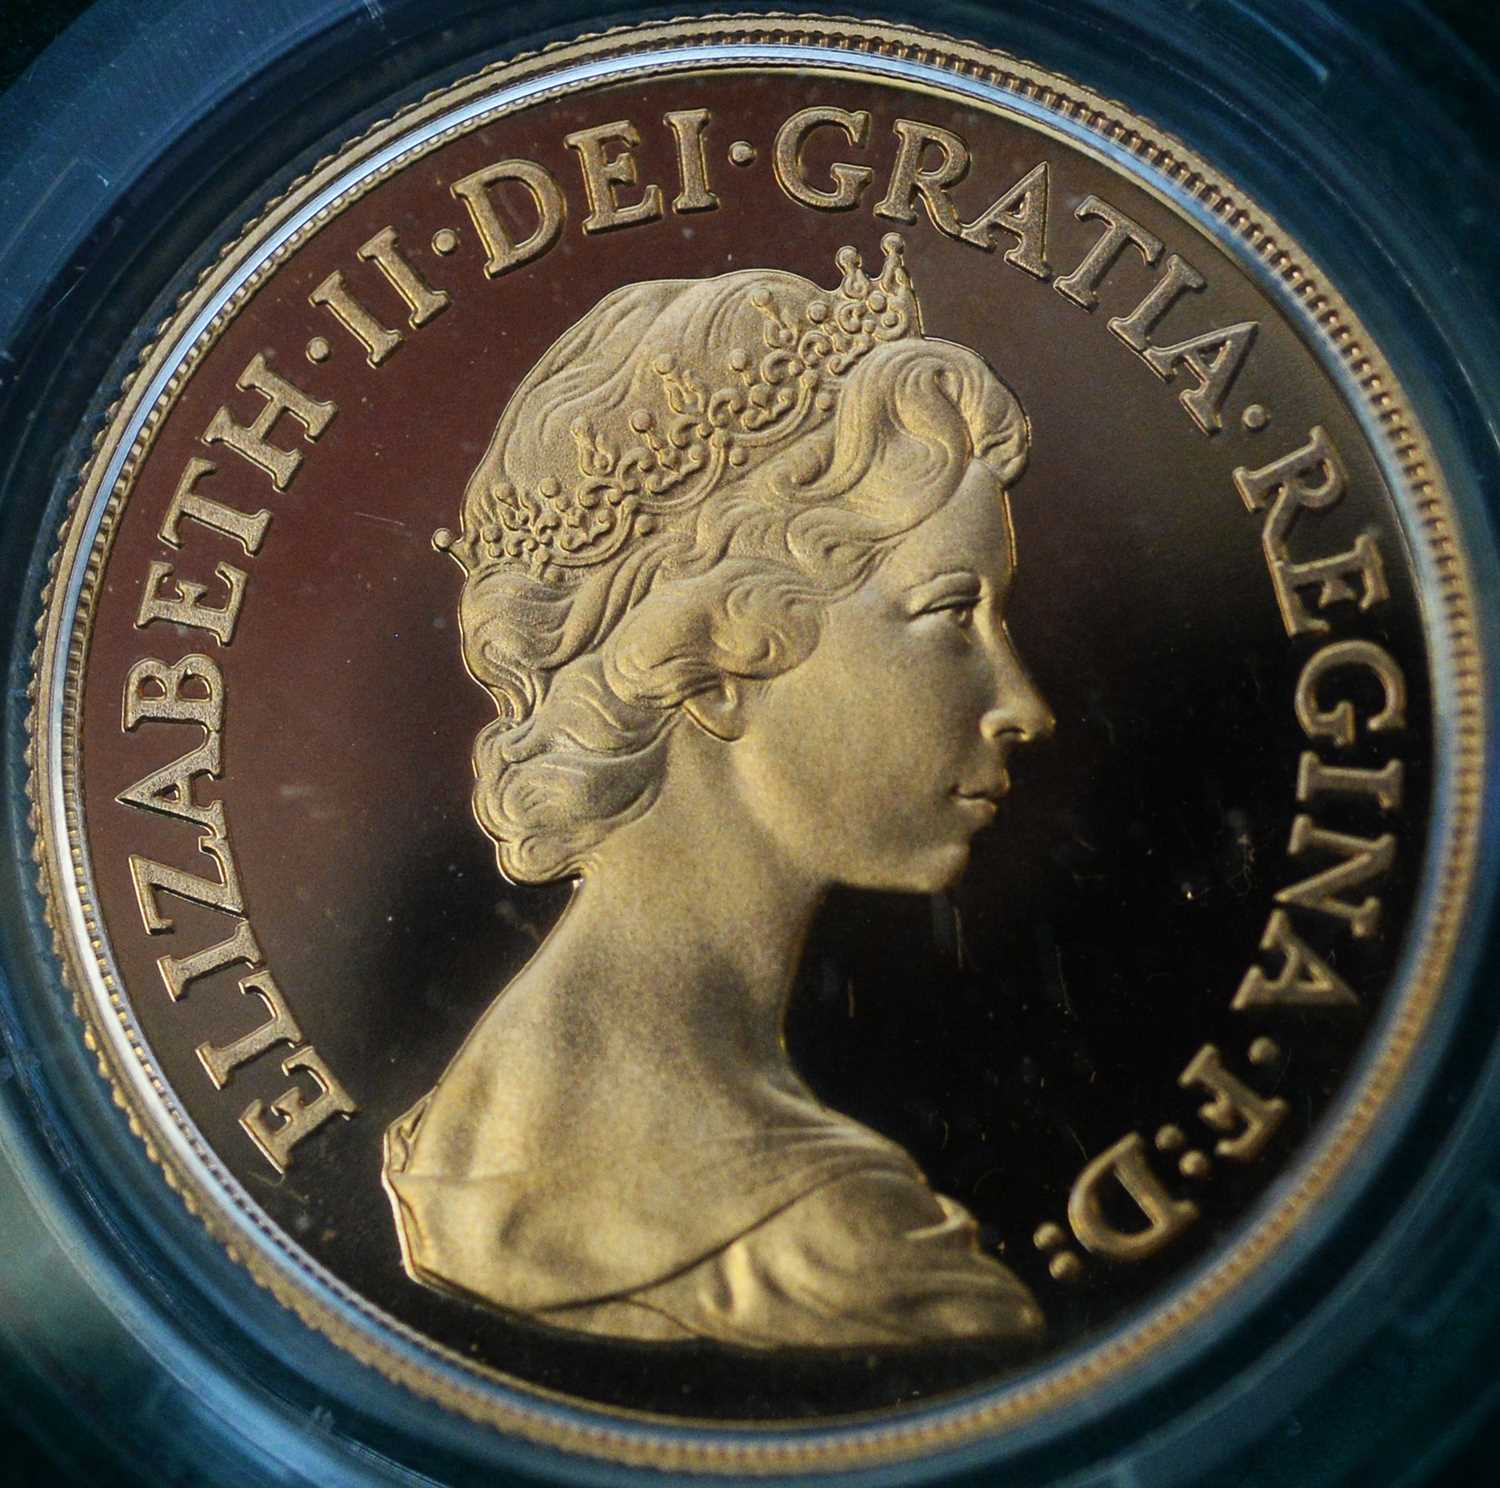 1980 four coin gold proof sovereign set - Image 5 of 8